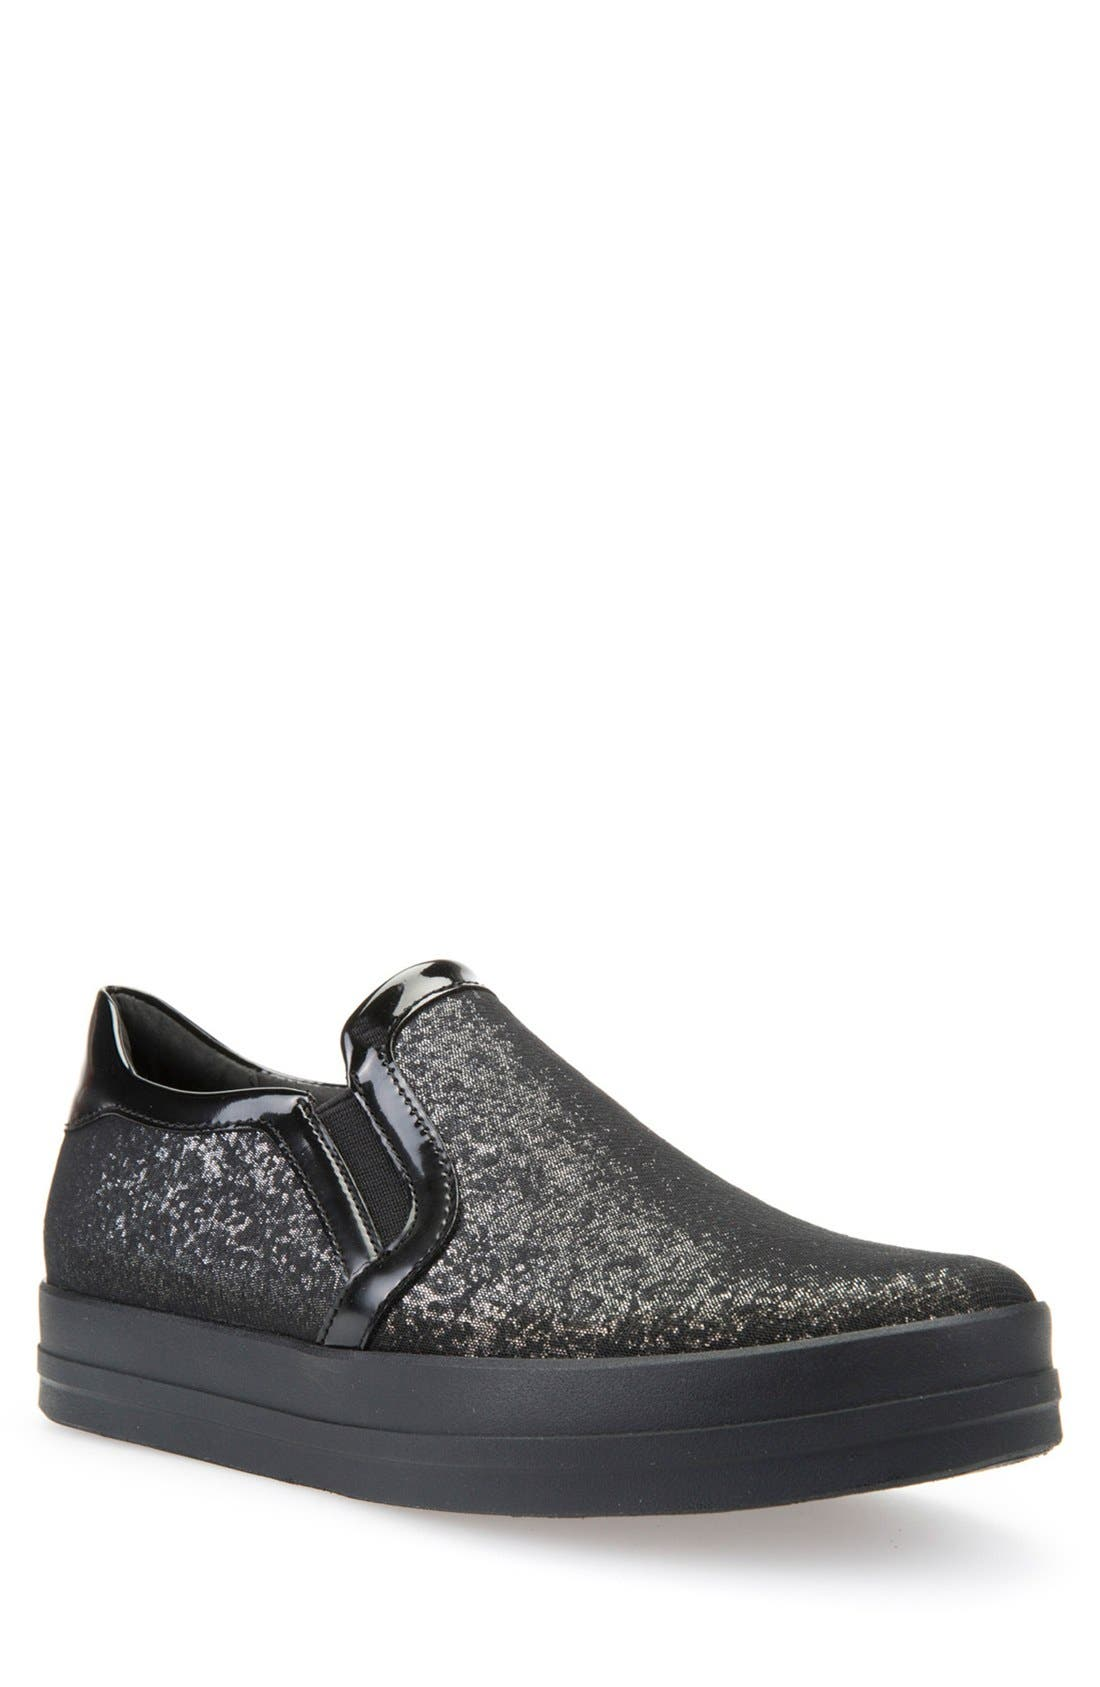 Geox 'Hidence' Slip-On Sneaker (Women)